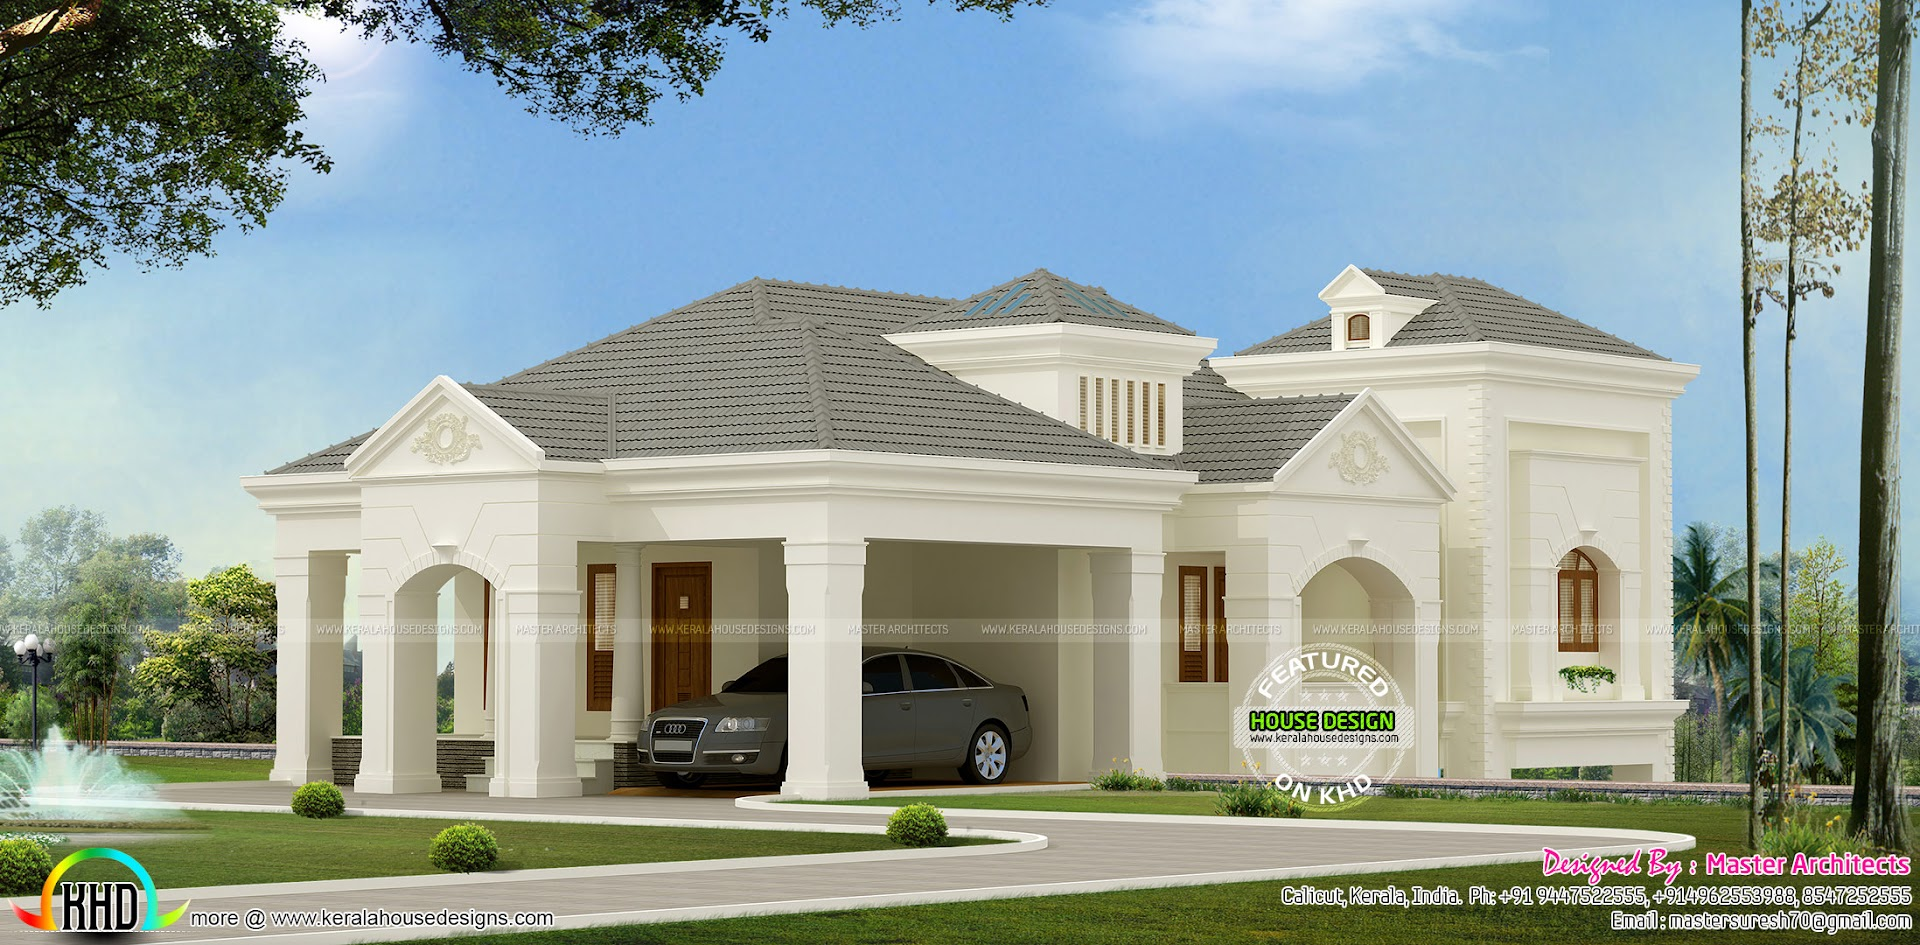 Cellar type home by master architects kerala home design for Colonial style house plans kerala